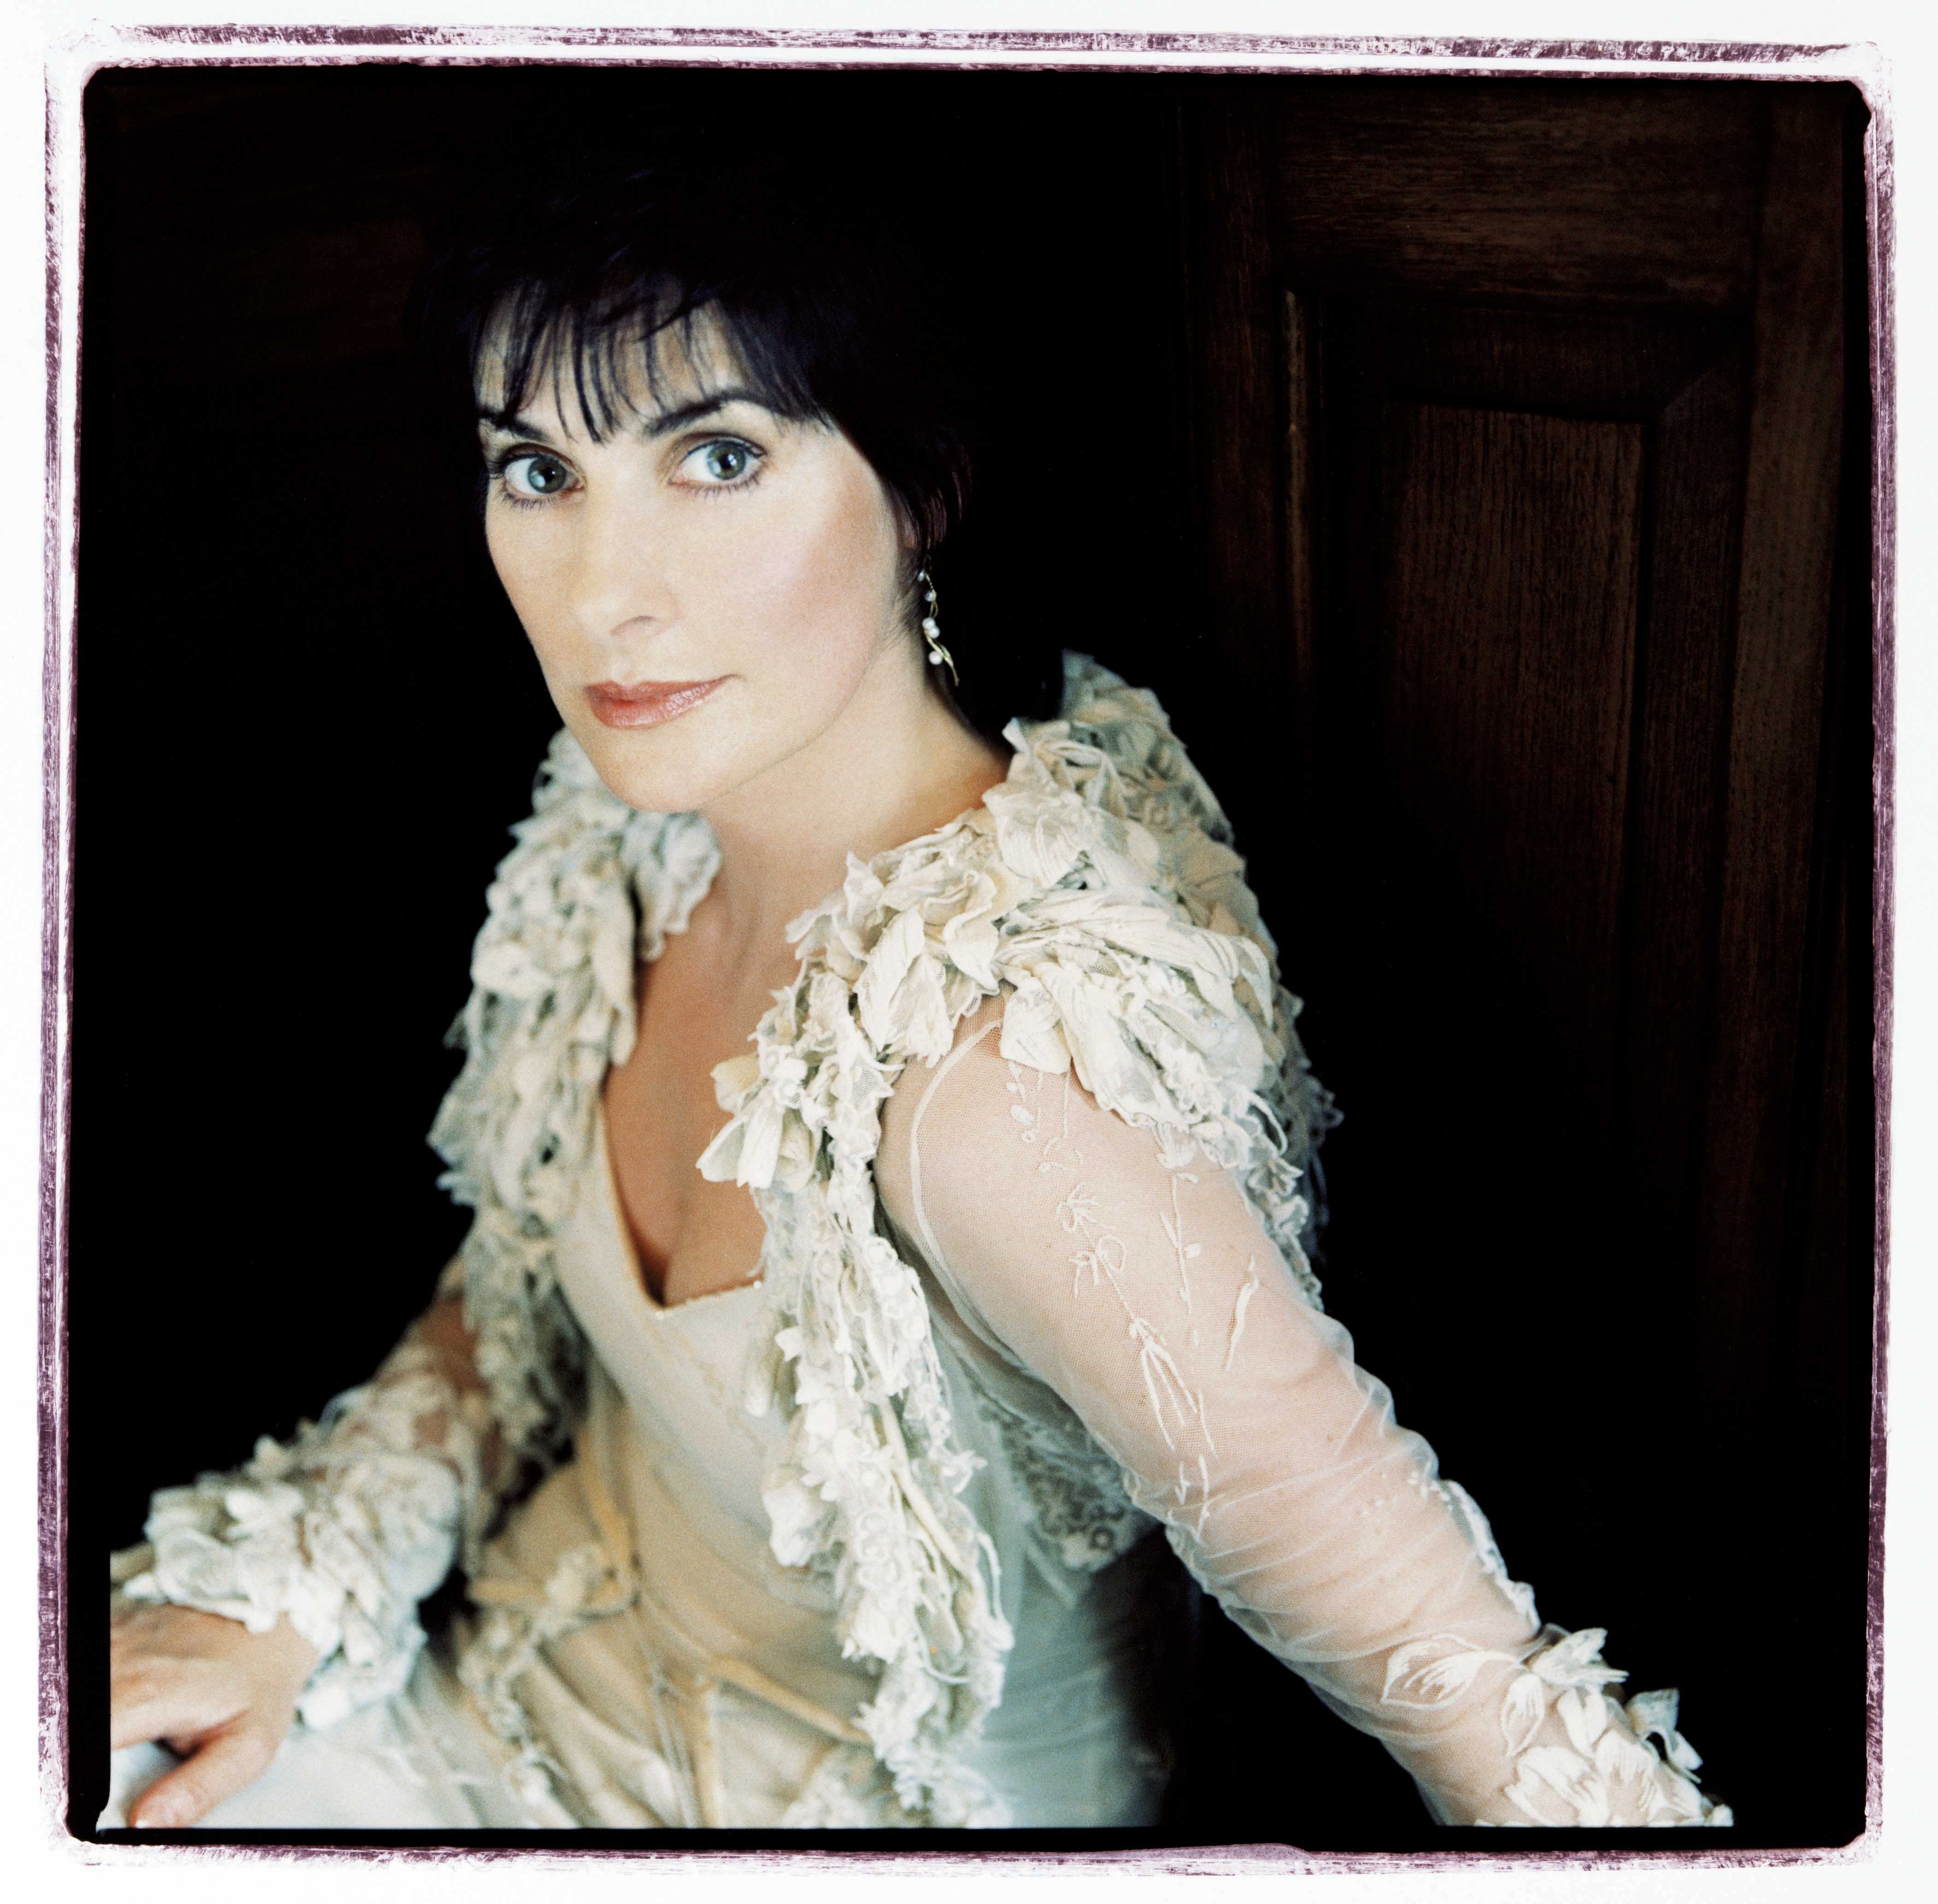 Pochette : Enya - The Celts